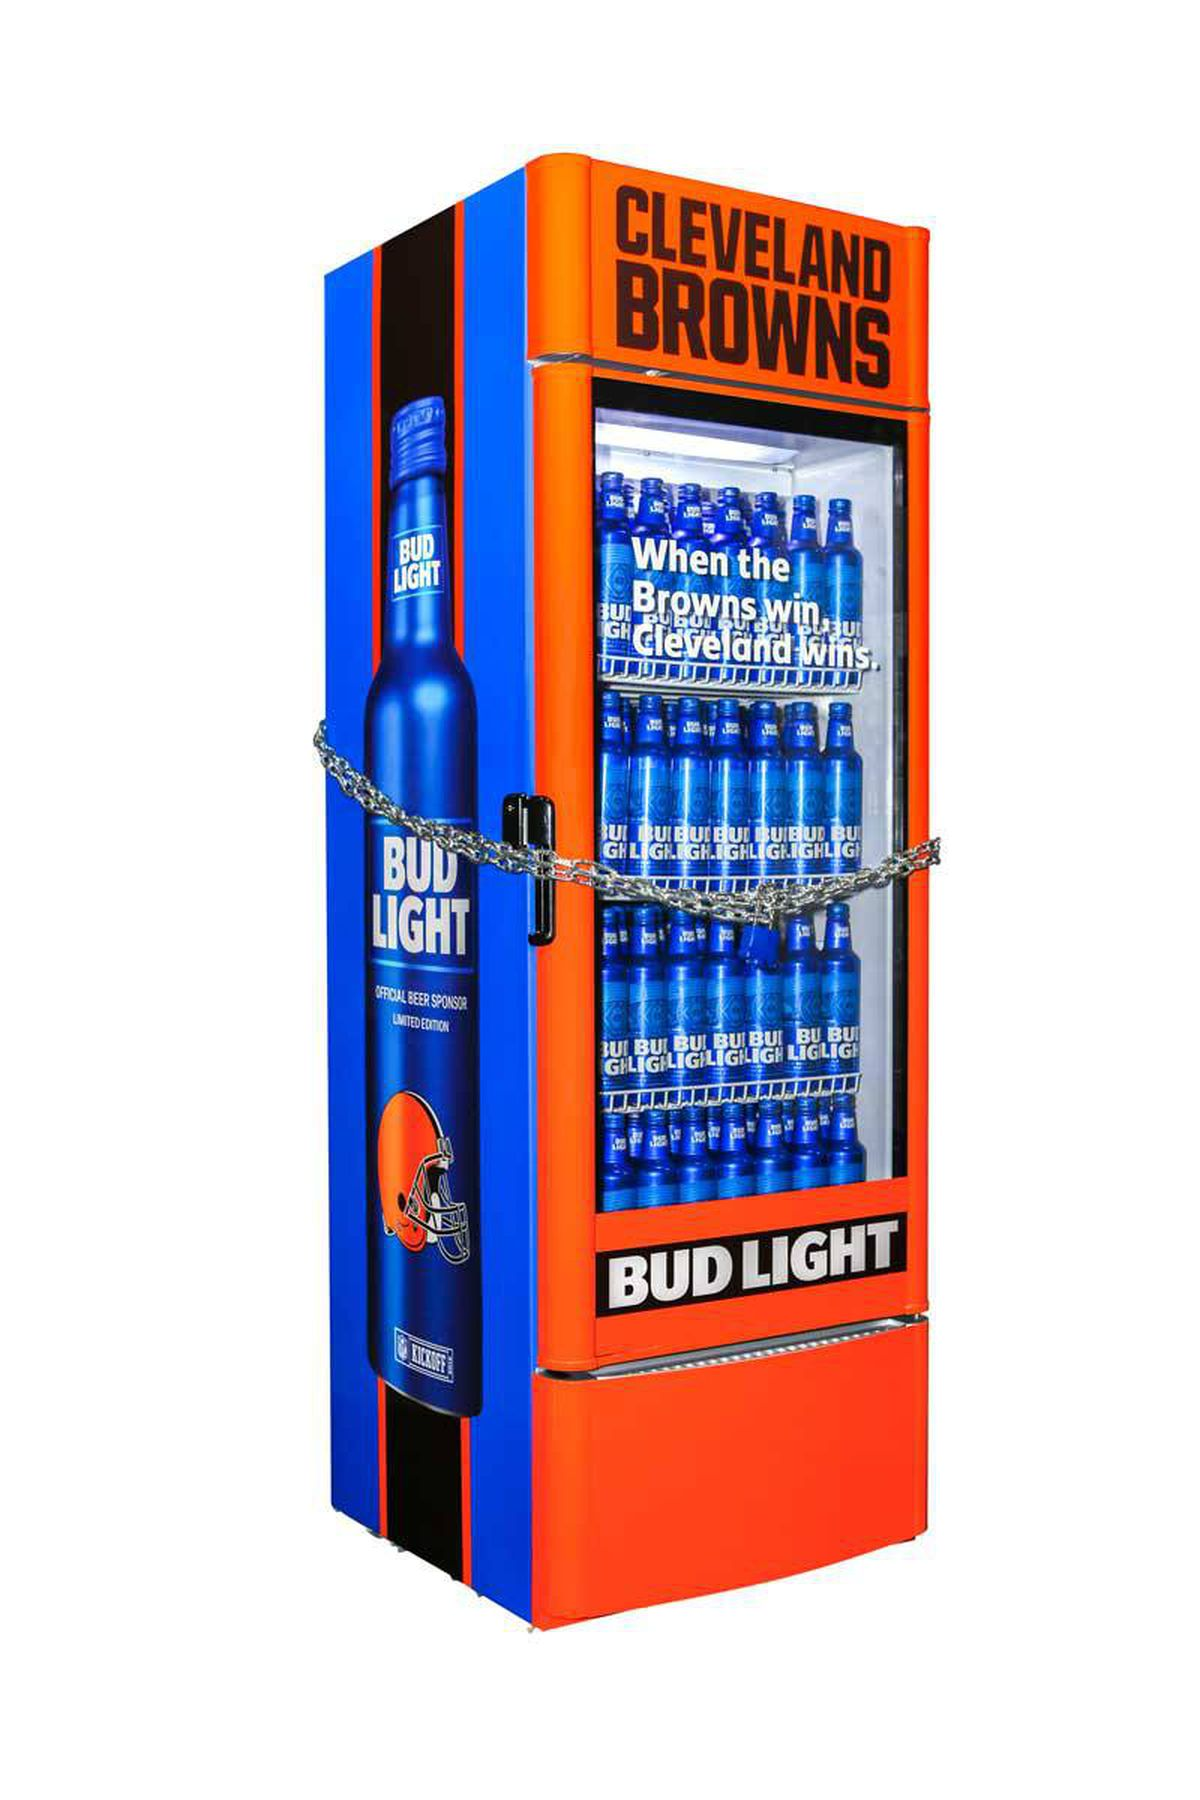 Fridge Light Bud Light Browns Victory Fridges Available For Purchase